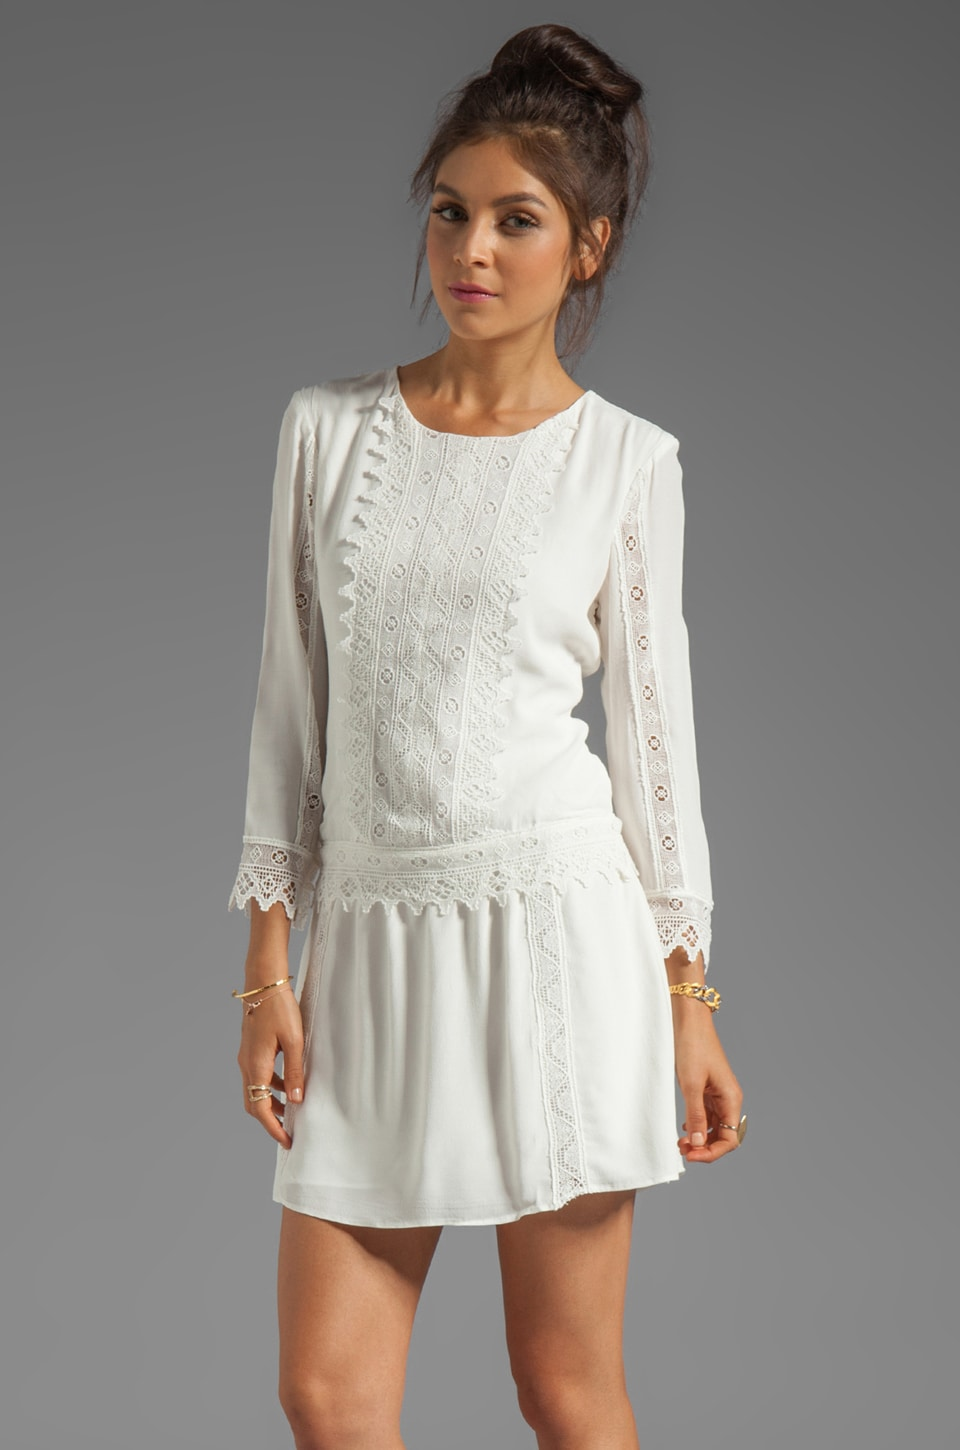 Dolce Vita Teresa Edgy Lace Dress in White